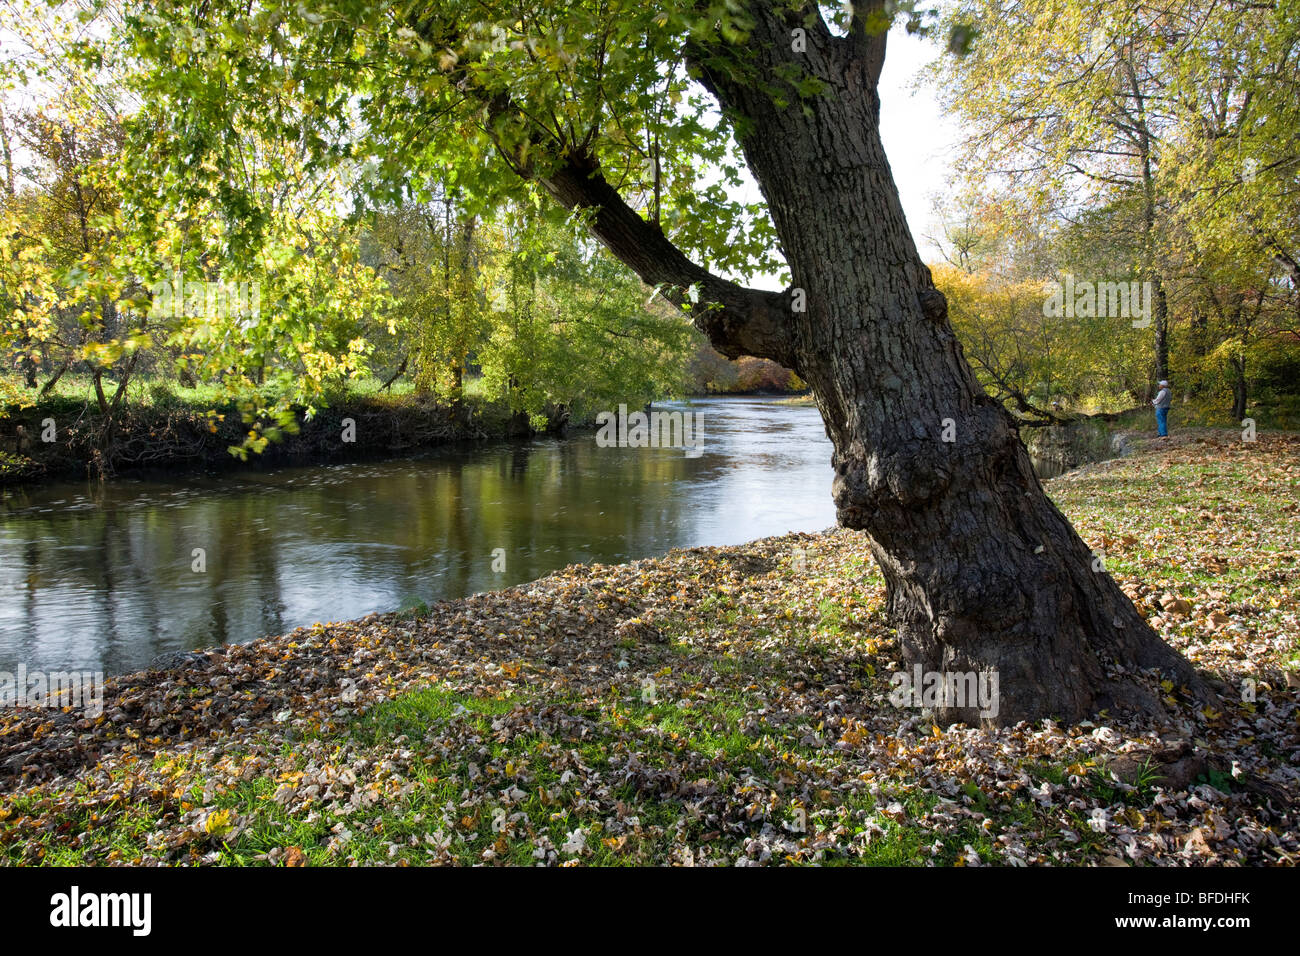 A Maple tree frames an autumn view of the Brandywine River along the ...